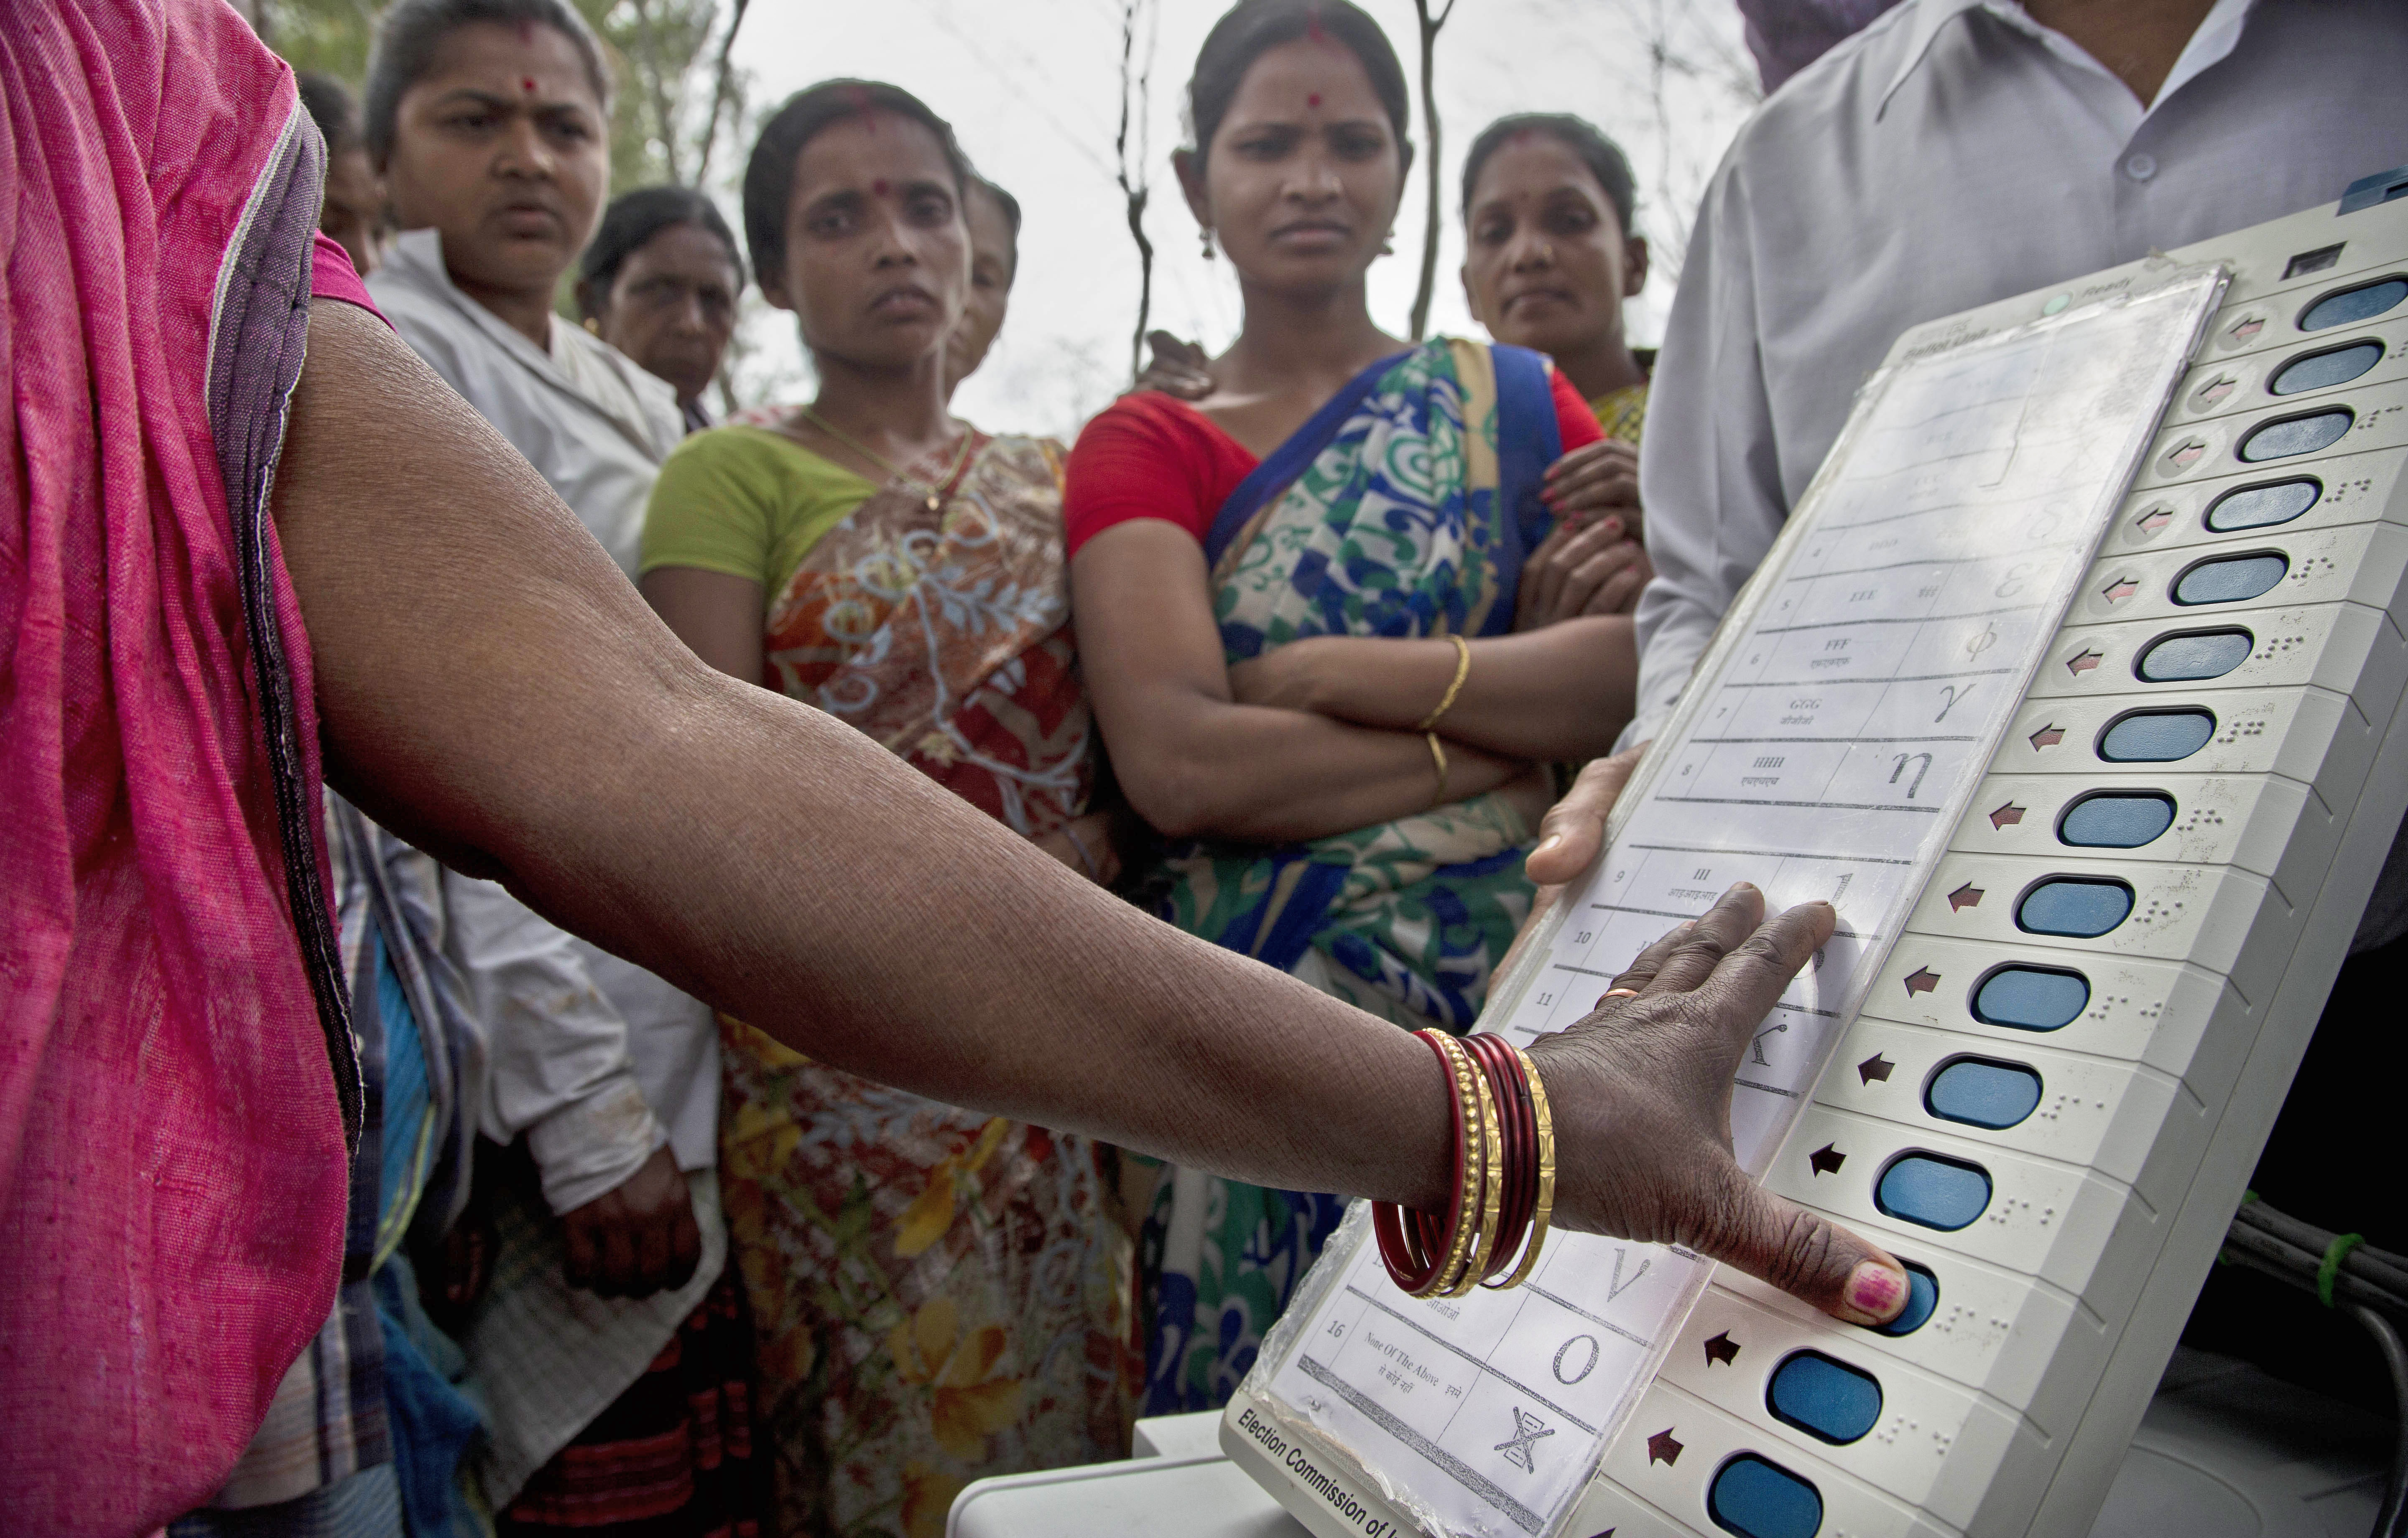 A woman casts her vote on the demo electronic voting machines and Voter Verifiable Paper Audit Trail or VVPAT during an election awareness drive by district administration amongst the tea garden laborers ahead of India's general election in Jorhat - PTI